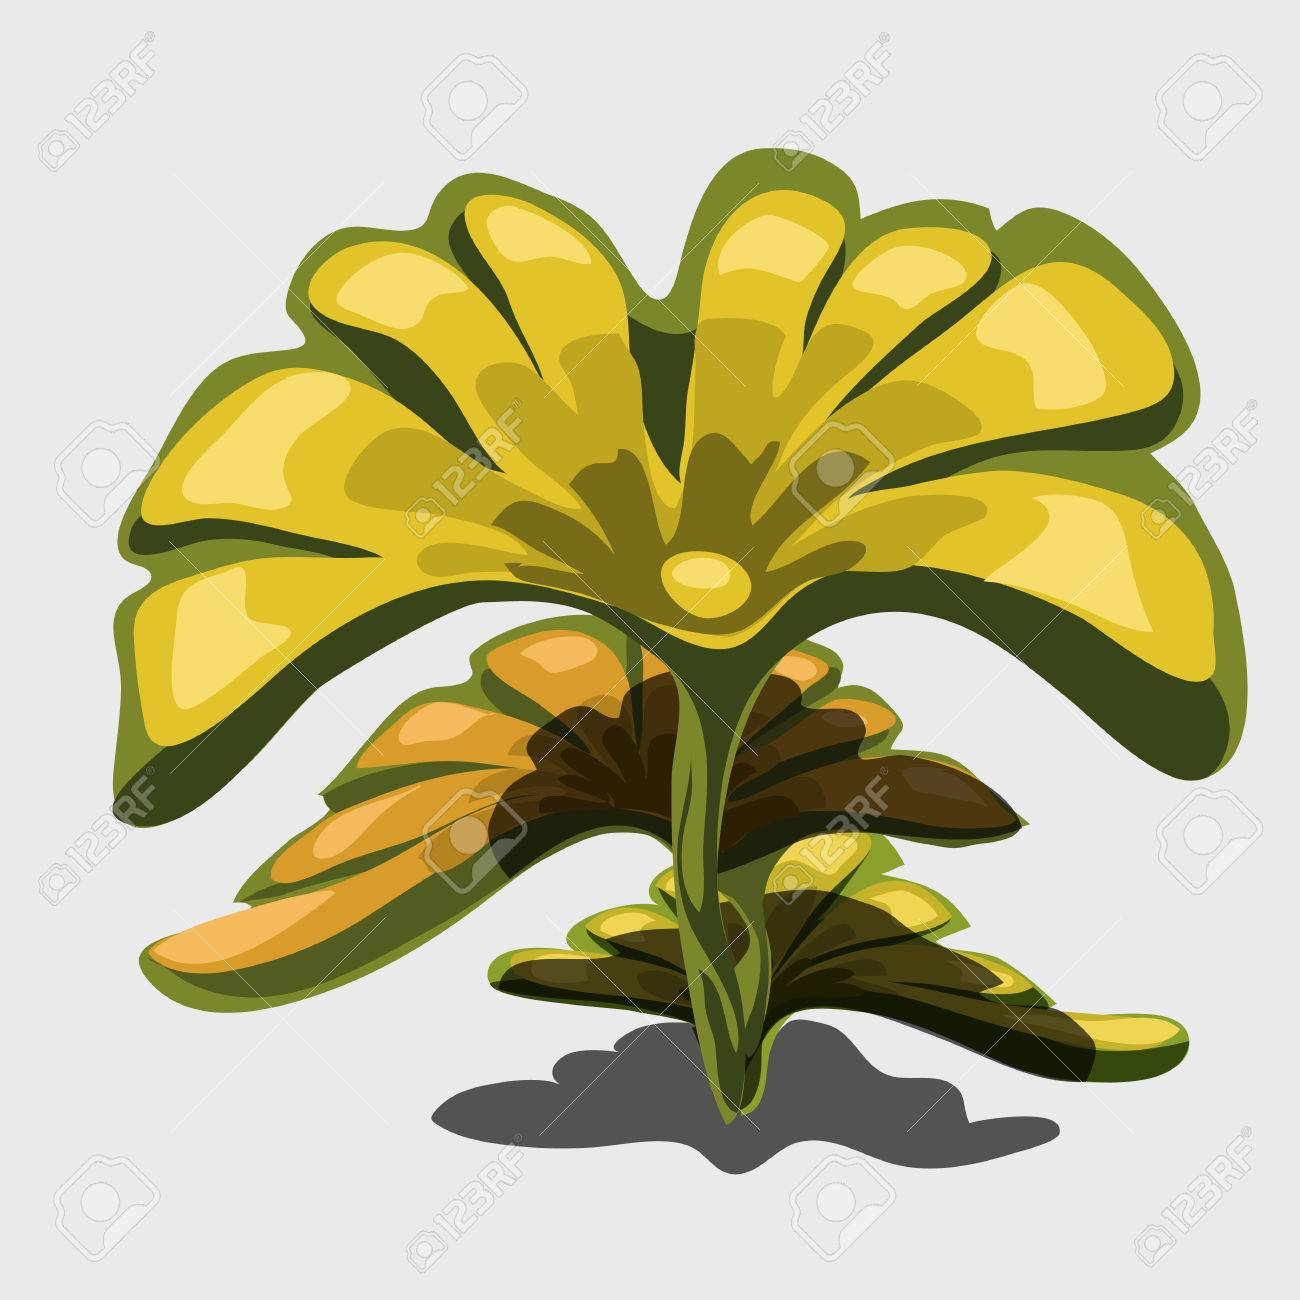 Yellow Exotic Plant With Large Leaves Vector Cartoon Image Royalty